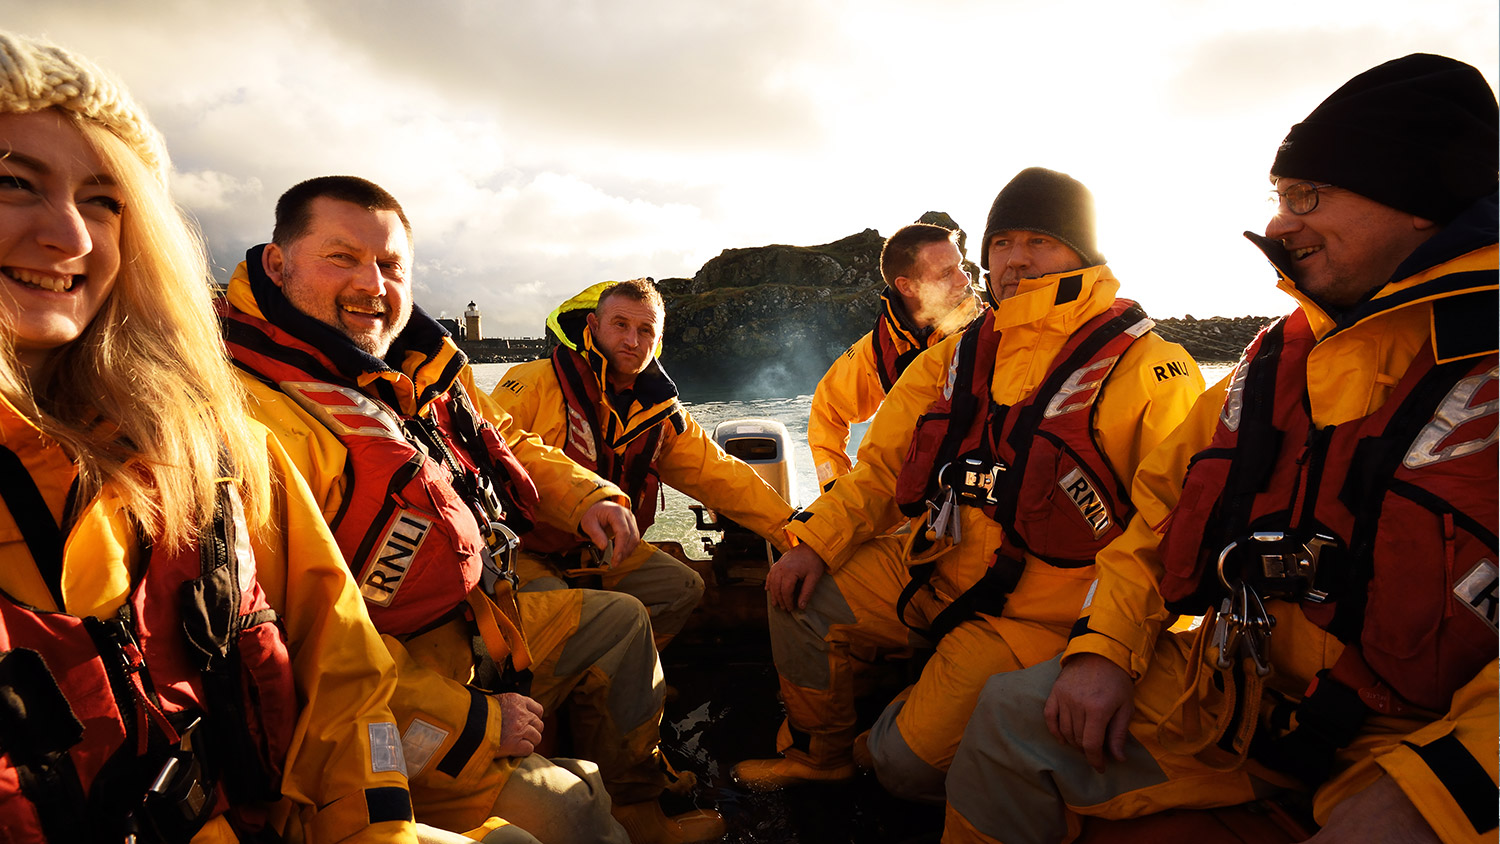 Six RNLI lifeboat crew members dressed in their all-weather lifeboat kit onboard a lifeboat